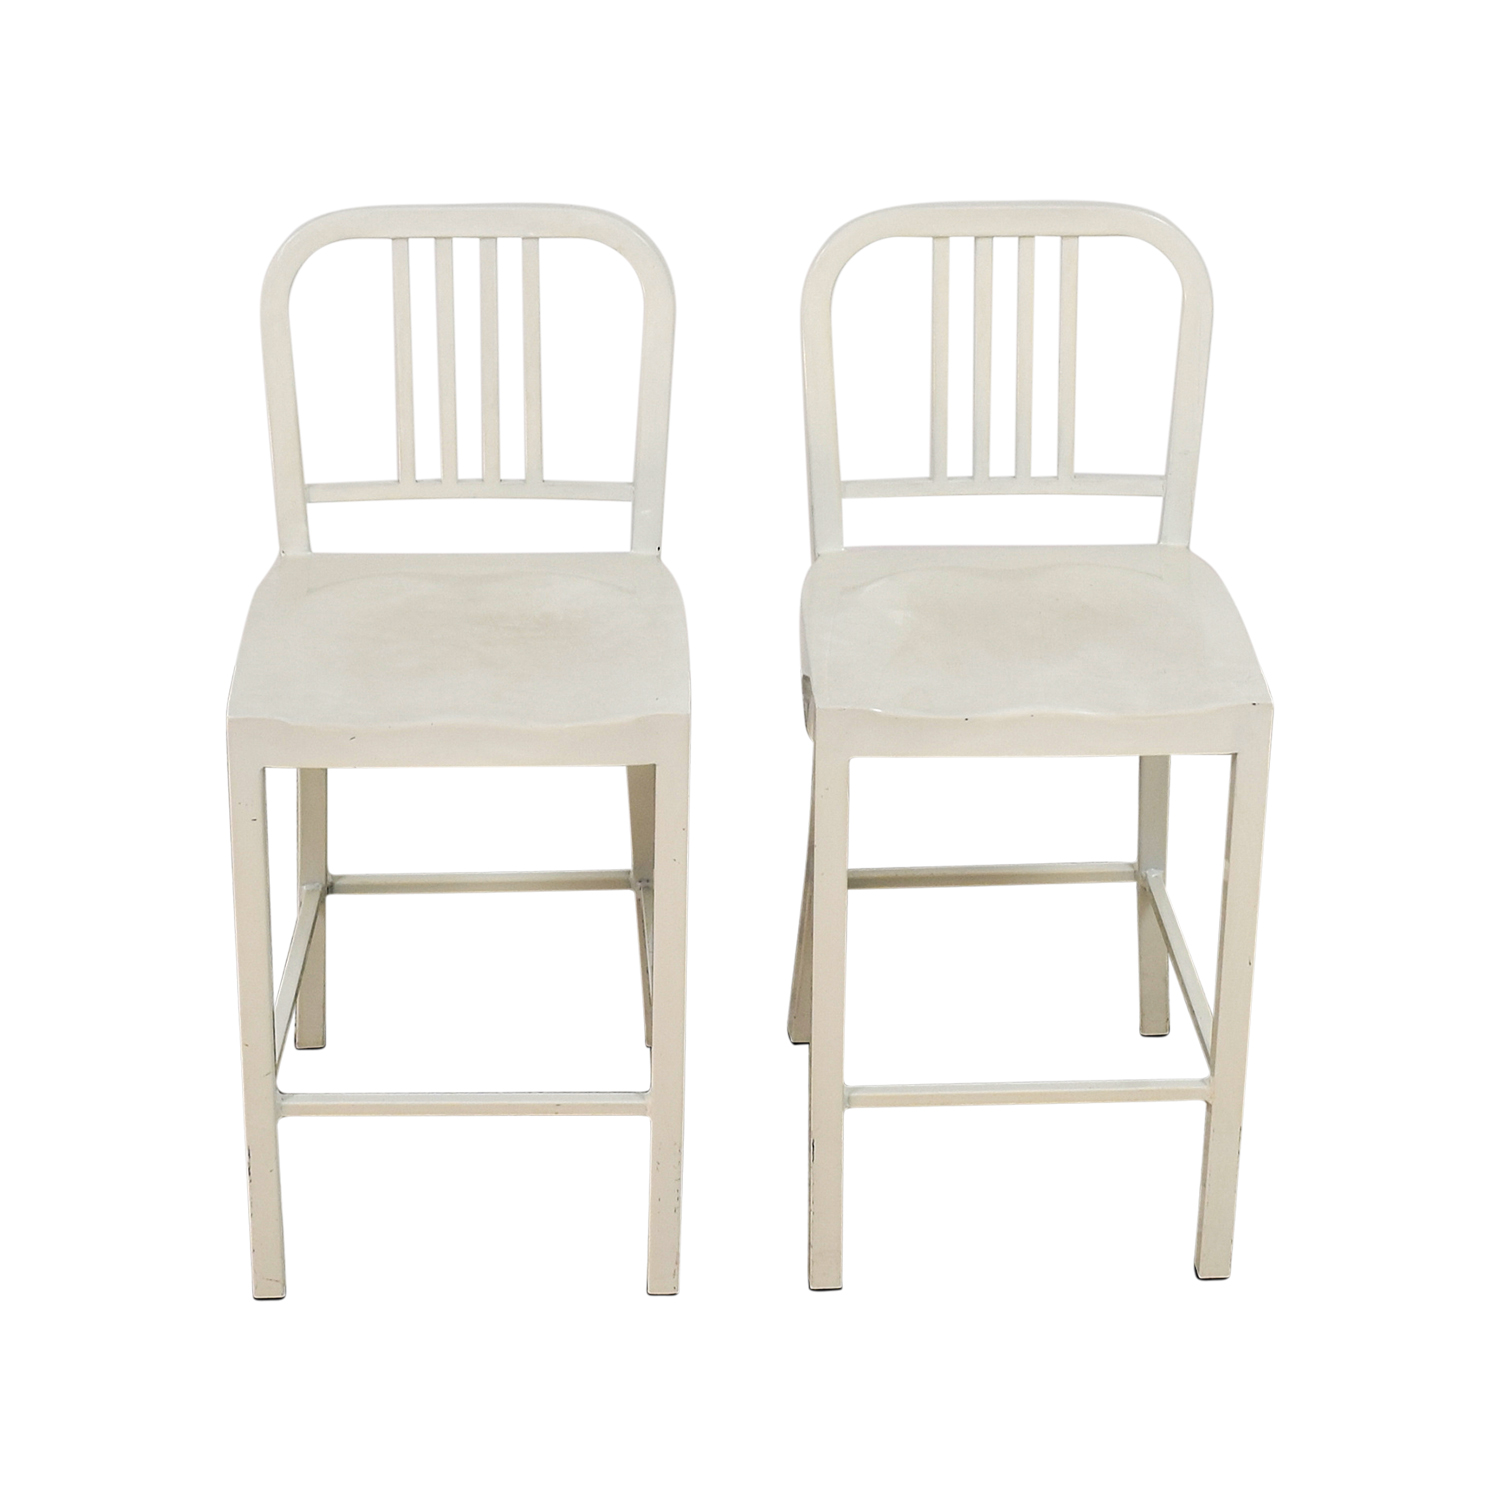 White Metal Chair Calligaris Dining Set Coupon Code